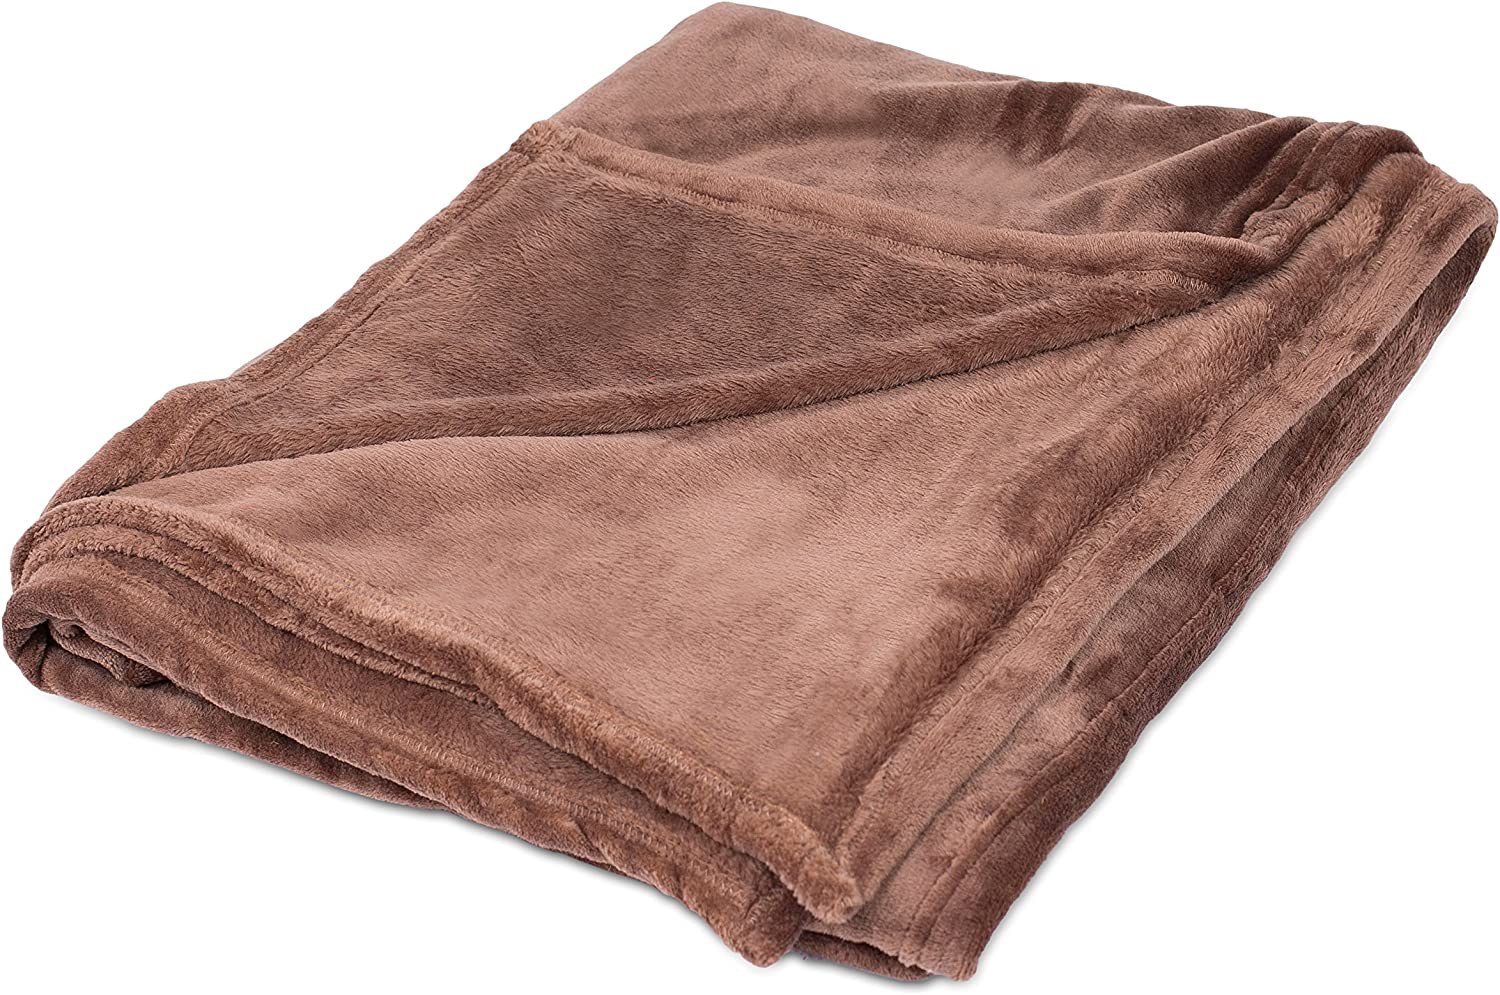 BirdRock Home Internet's Best Plush Throw Blankets - Café (Brown) - Ultra Soft Couch Blanket - Light Weight Sofa Throw - 100% Microfiber Polyester - Easy Travel - Twin Bed - 66 x 90